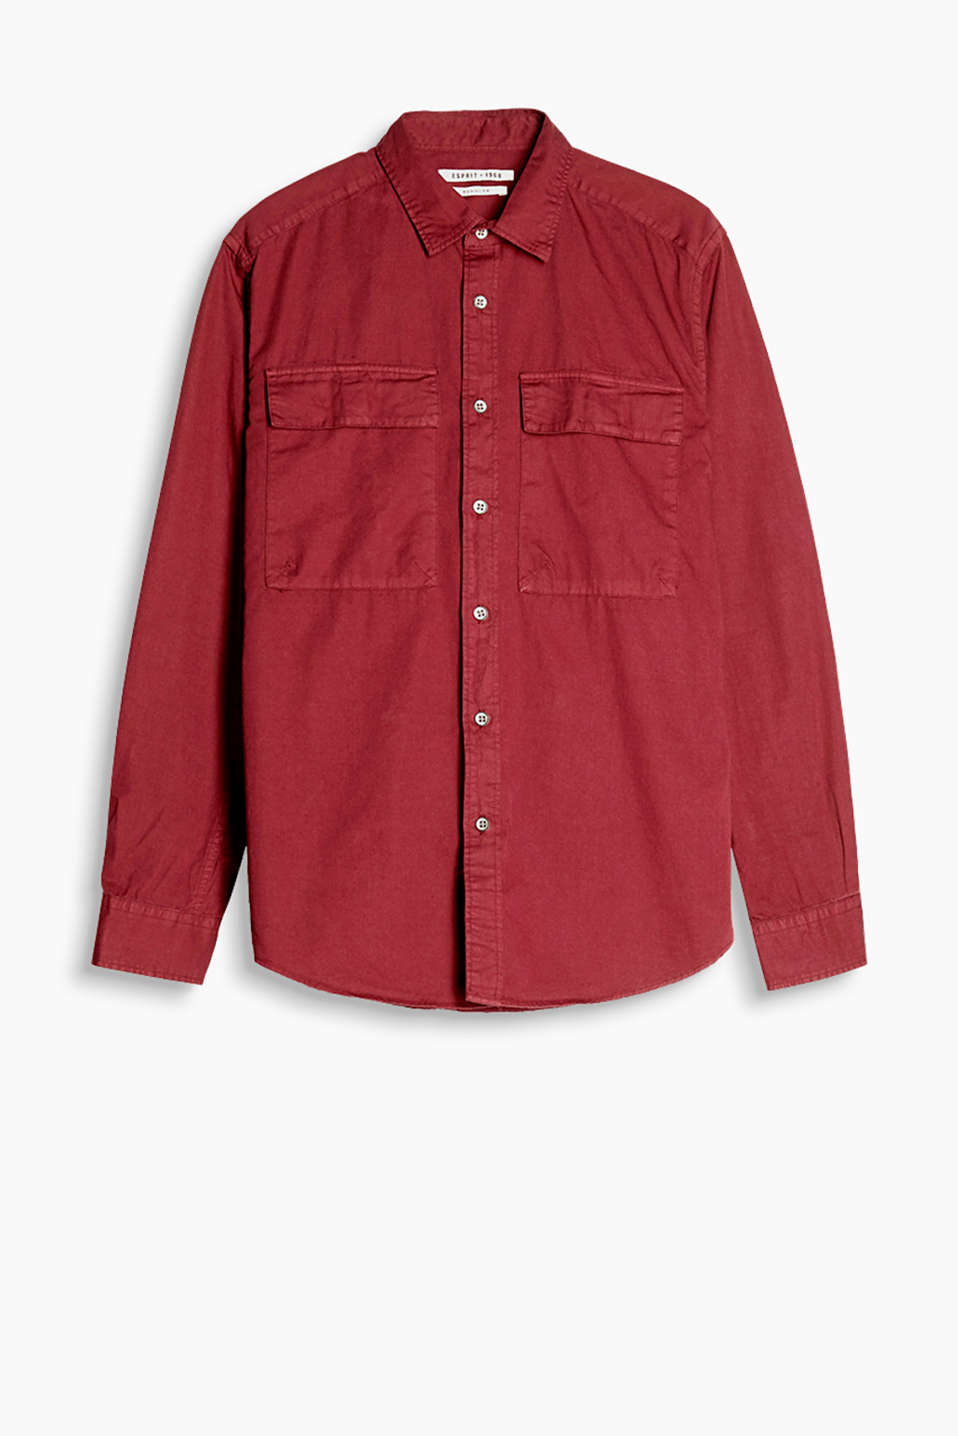 Shirt in a trendy utility style with patch flap pockets at chest height, in dense cotton fabric